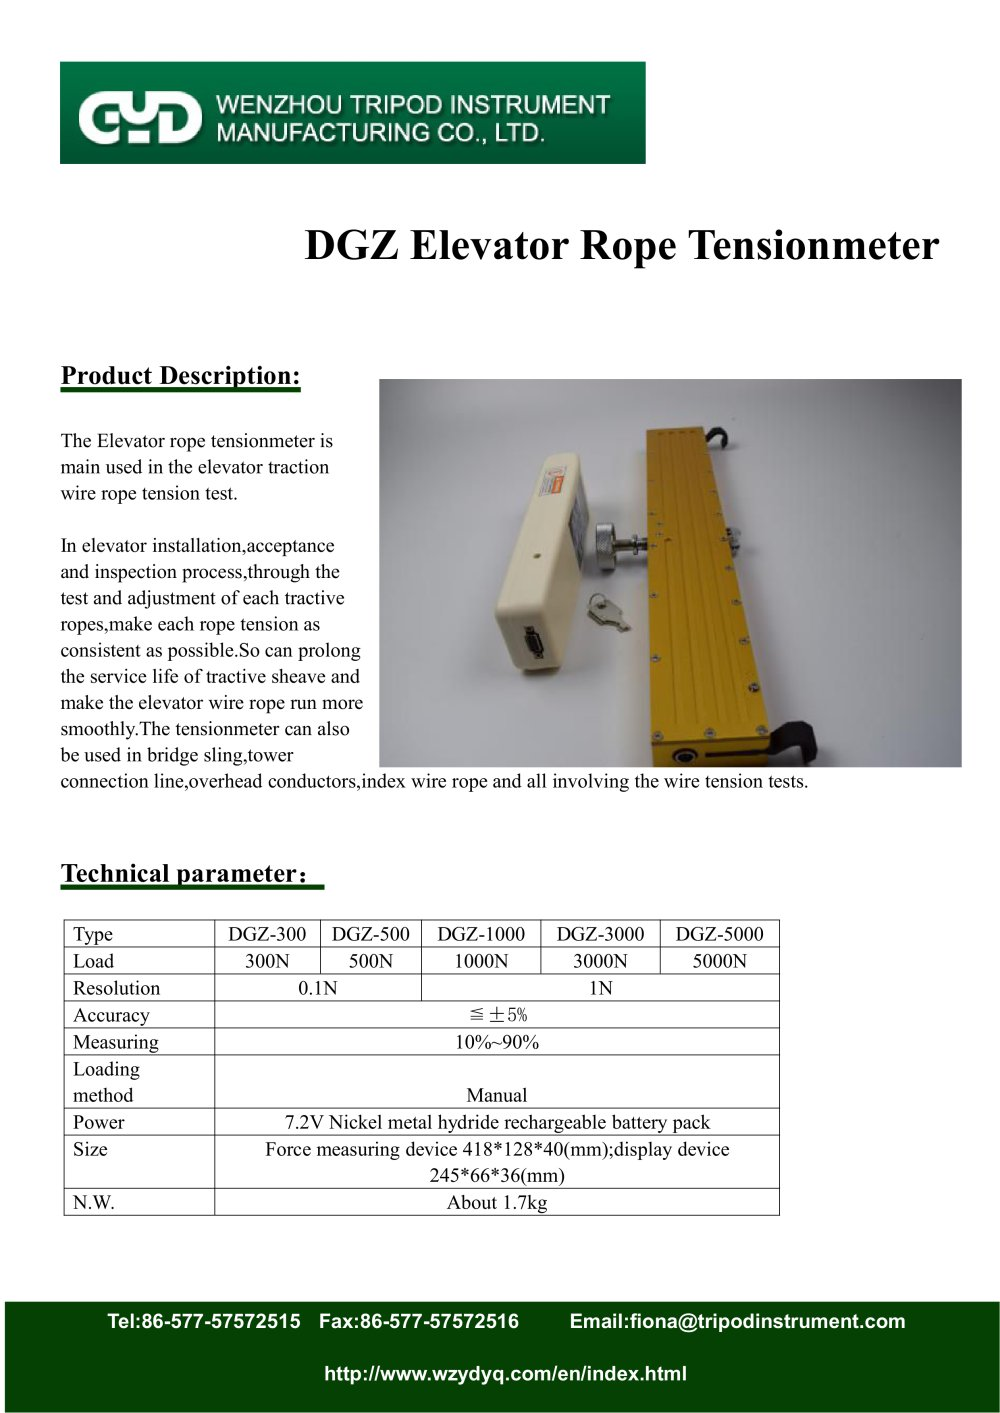 tensiometer for elevator rope| DGZ | Tripod instrument - Wenzhou ...